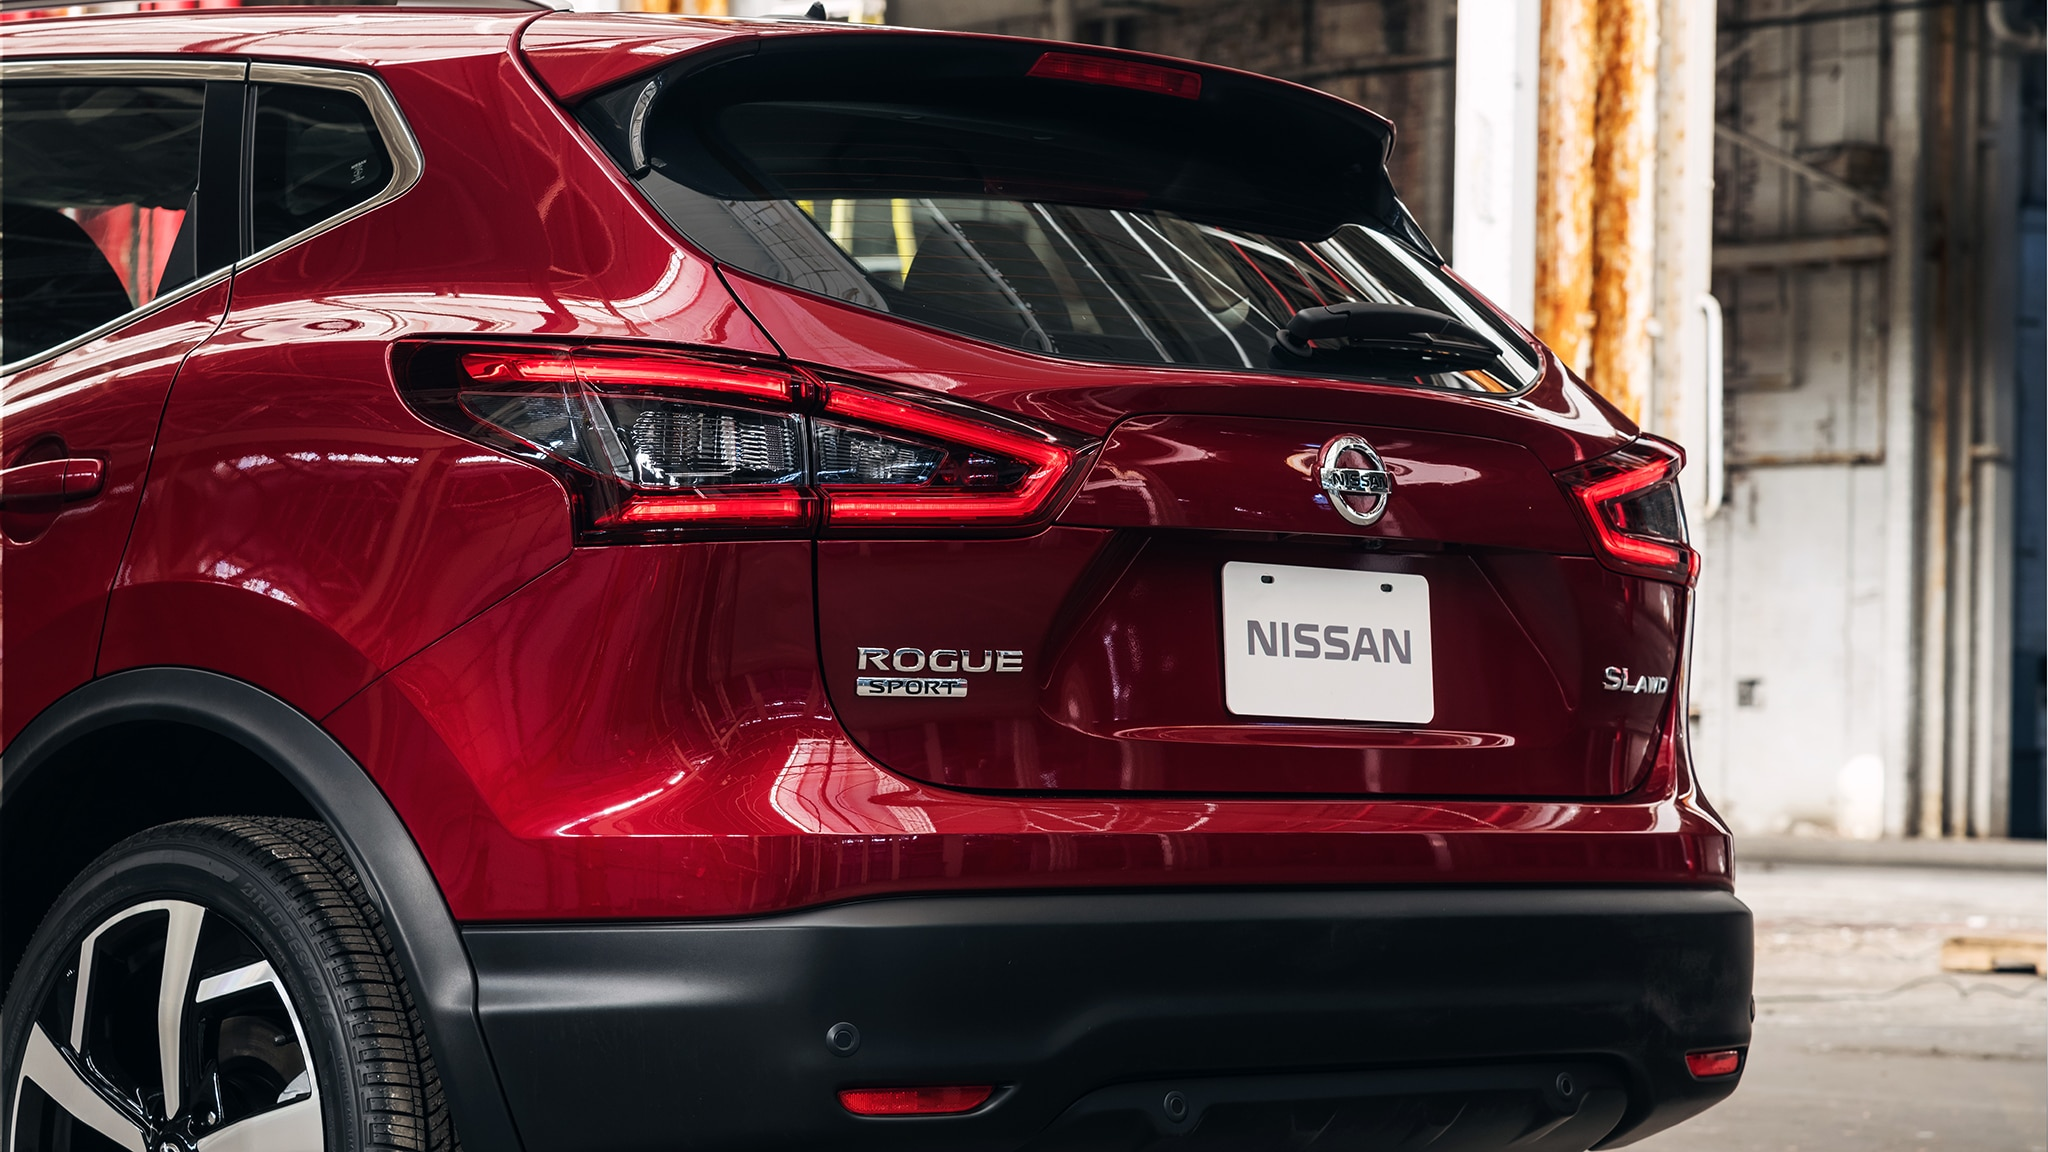 2020 nissan rogue sport photos and info  the small suv gets fresher